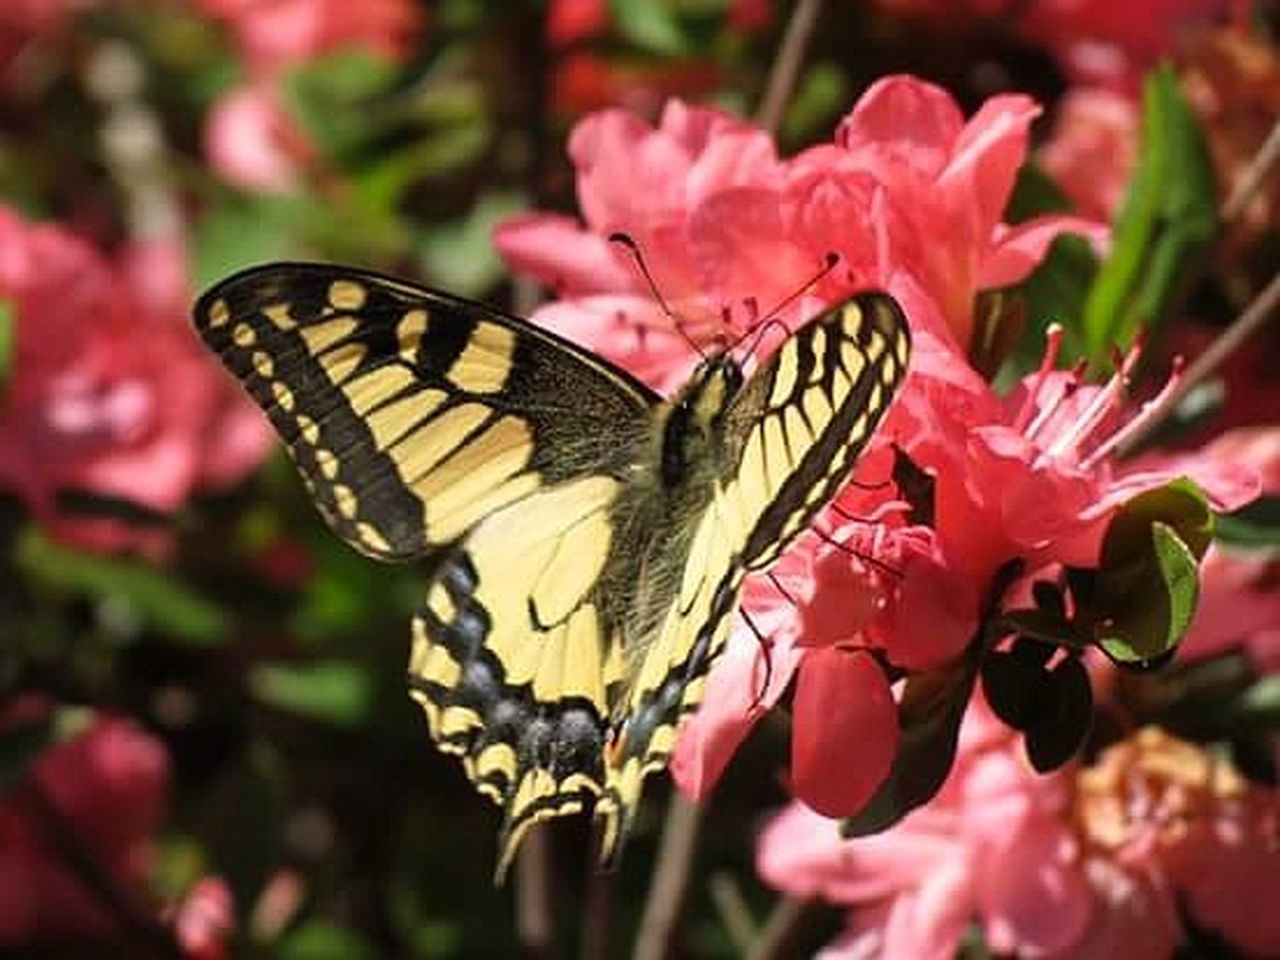 insect, butterfly - insect, animal wing, animals in the wild, animal wildlife, nature, one animal, animal themes, no people, full length, flower, plant, butterfly, perching, freshness, outdoors, pink color, spread wings, pollination, close-up, beauty in nature, fragility, day